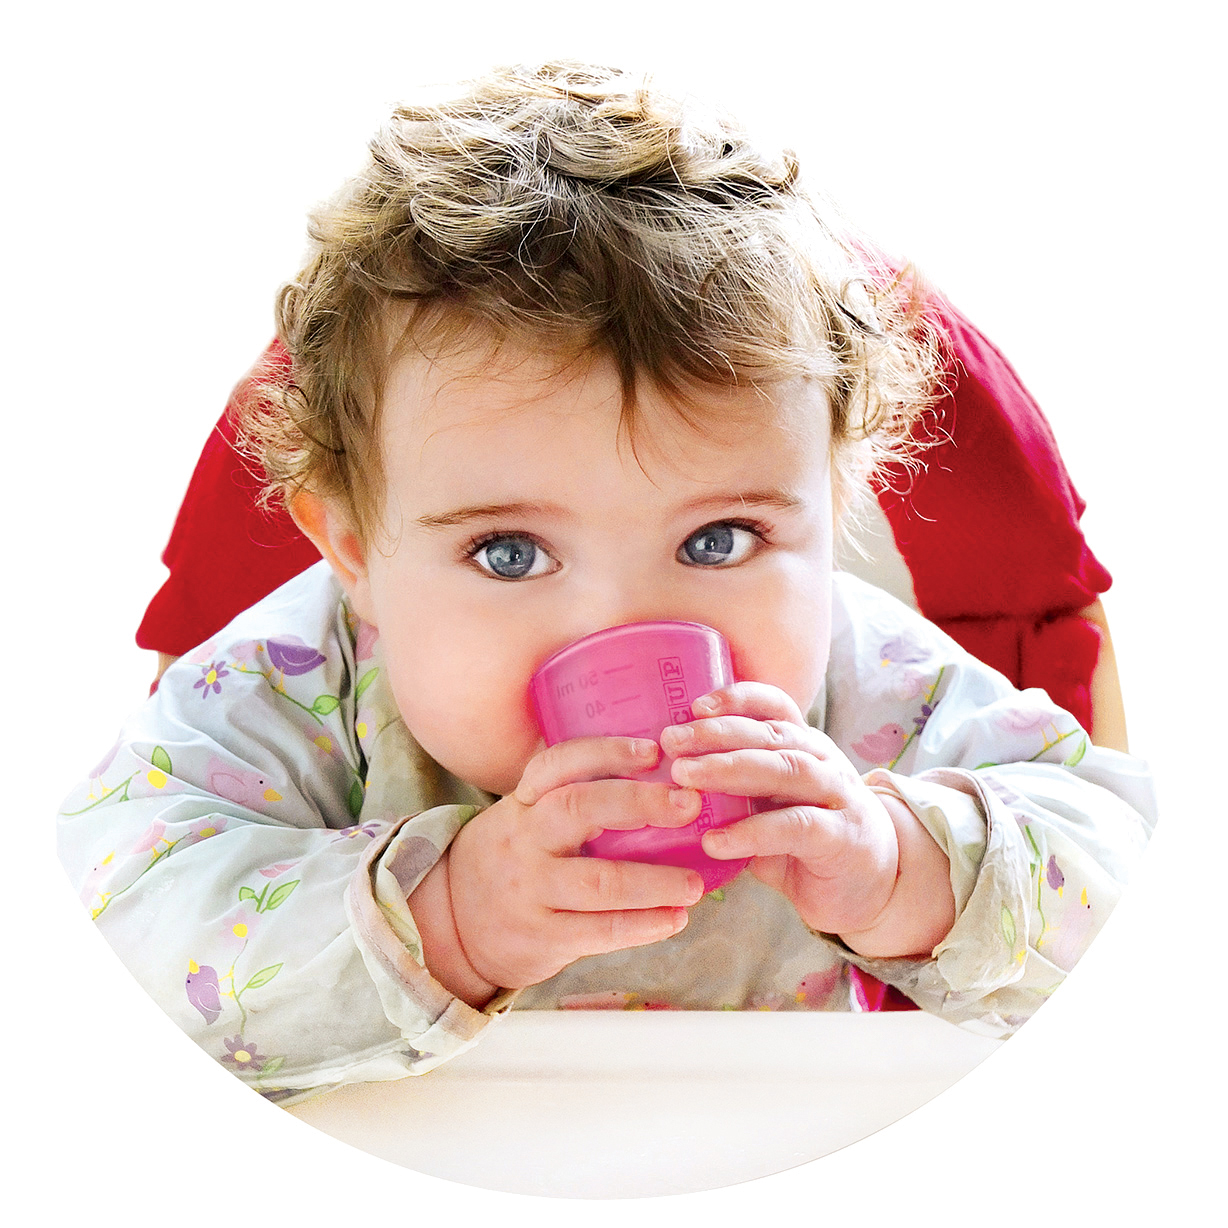 BABYCUP_Baby_and_Toddler_First_Cups_Best_Weaning_Cups_Lifestyle_sRGB_www.picandmiximages.co_.uk_-1